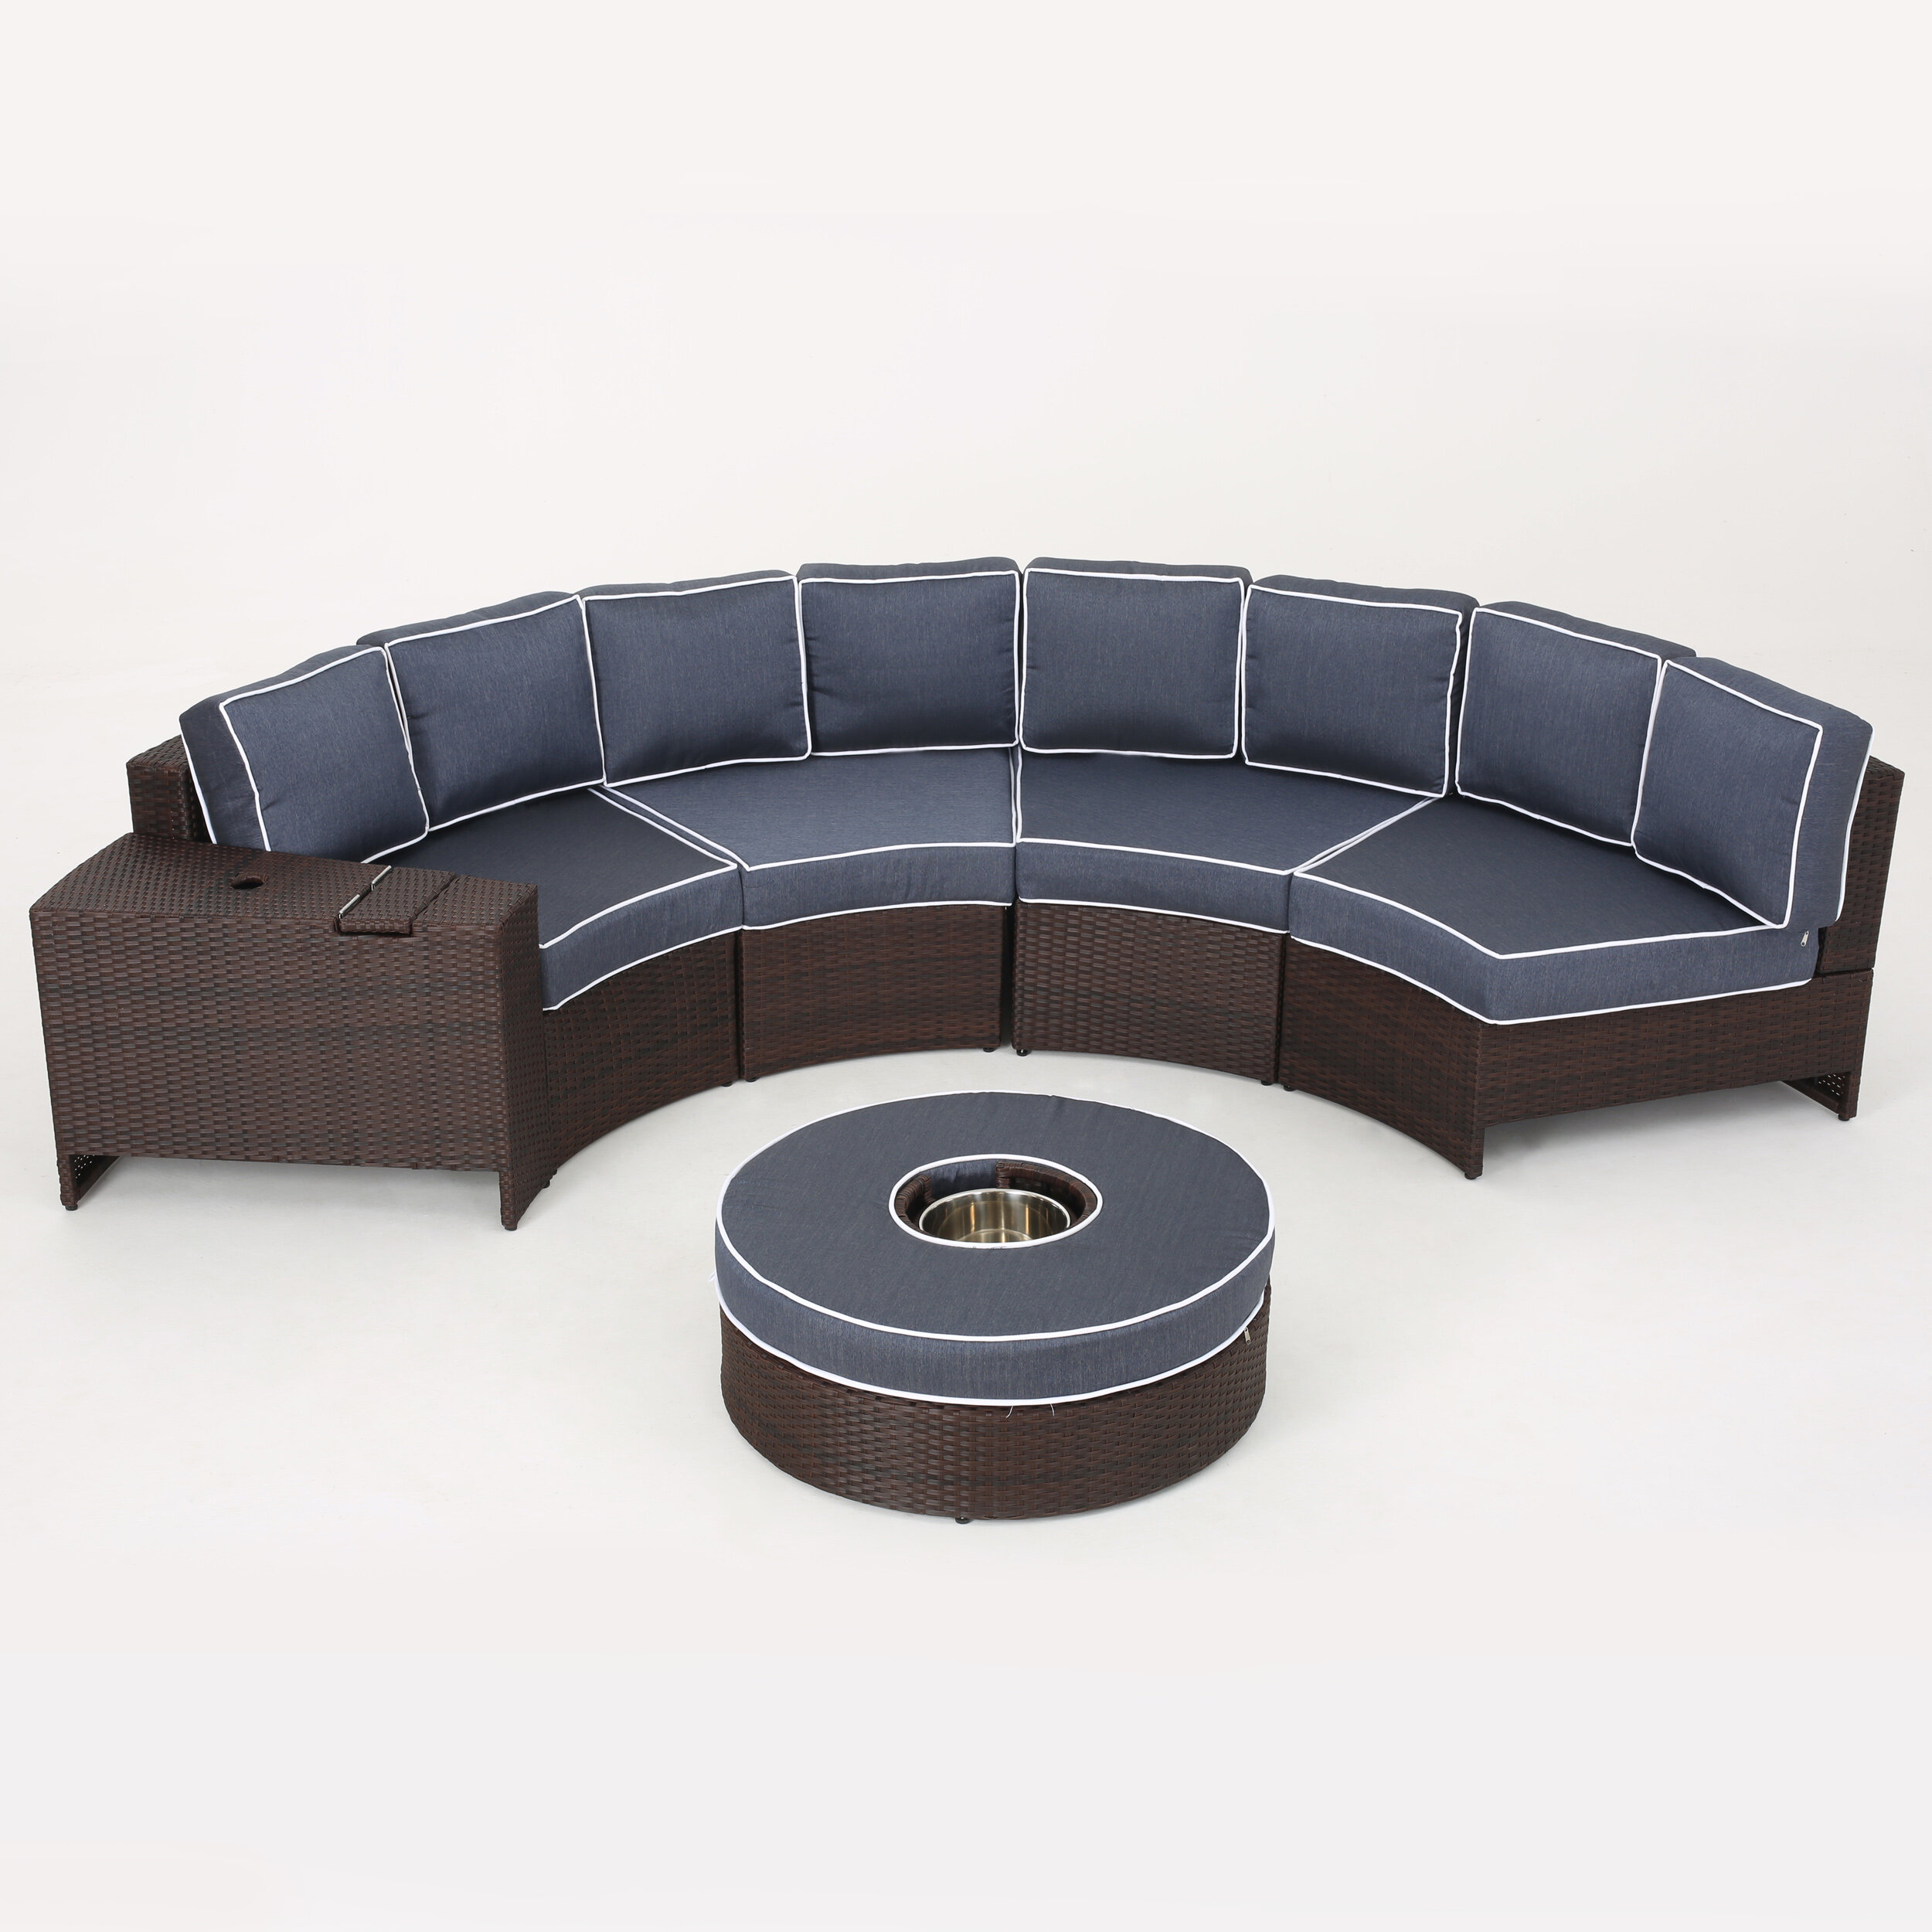 Bermuda 6 Piece Sectional Seating Group with Cushions & Reviews ...